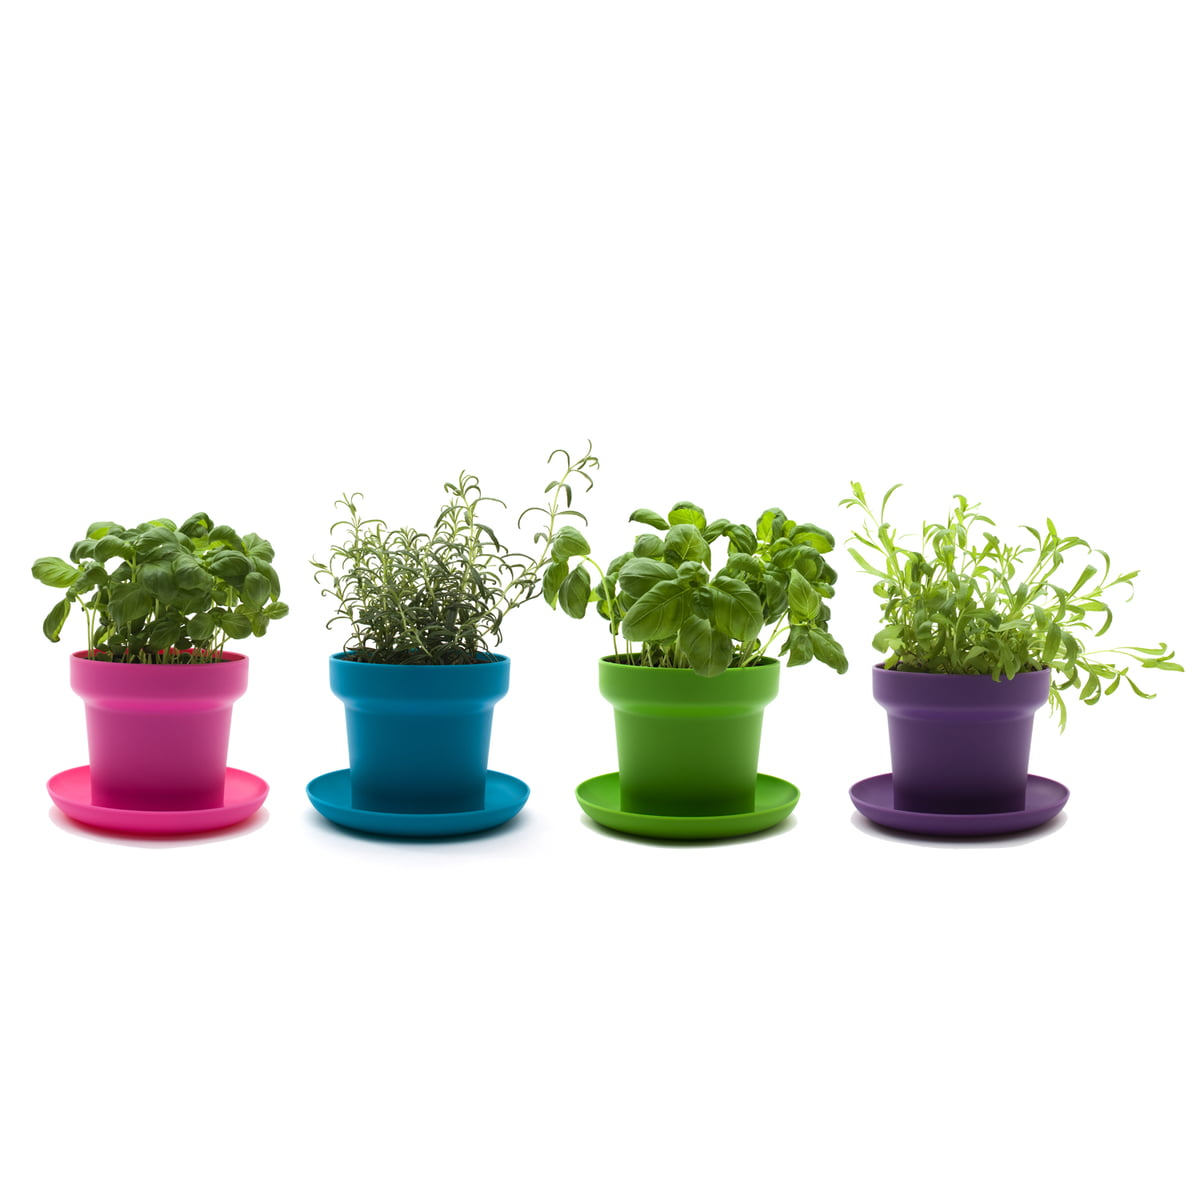 The green plant pot by authentics authentics green plant pot green turquoise pink purple plants mightylinksfo